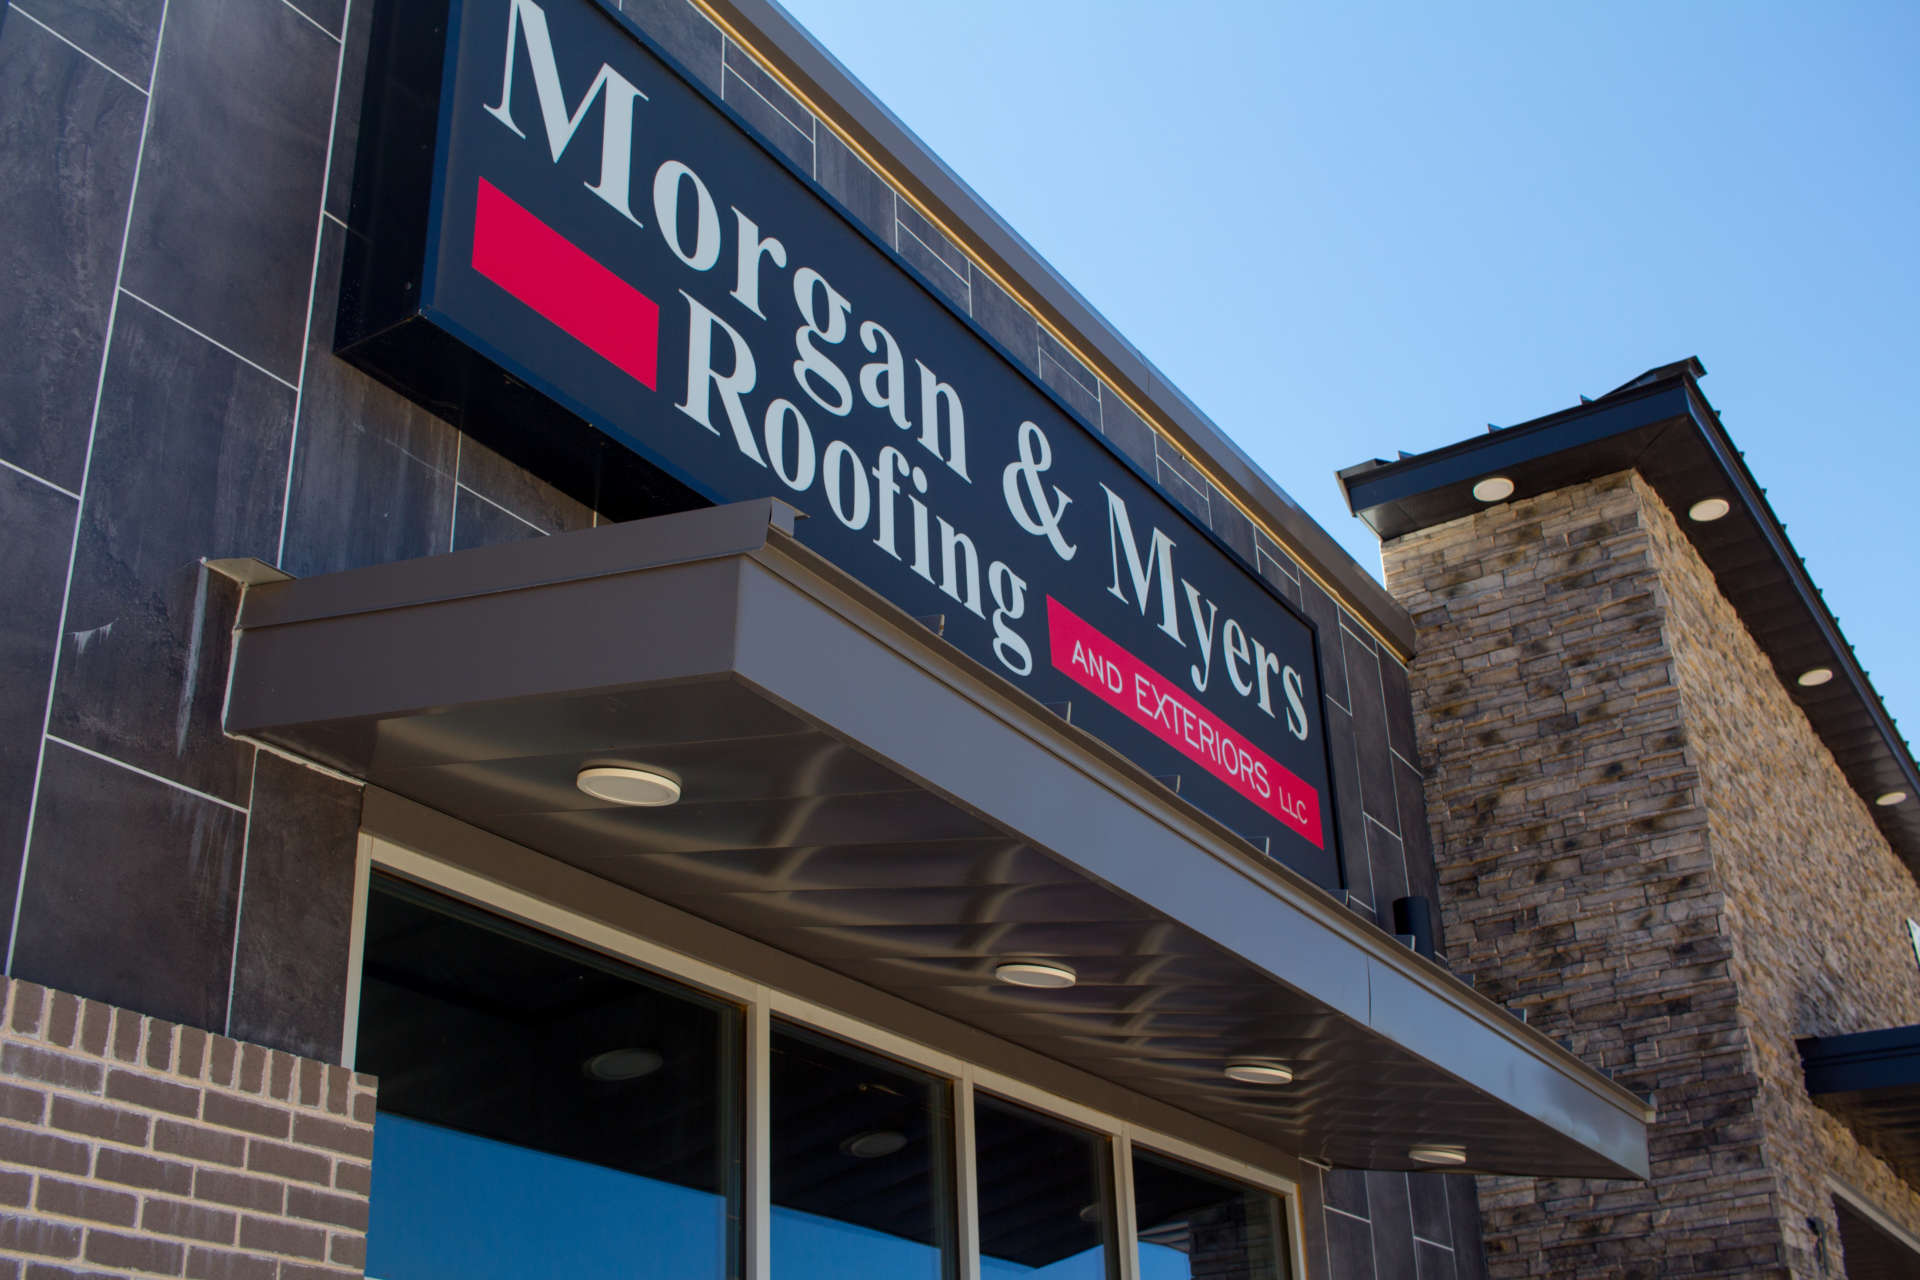 Morgan & Myers Roofing and Exteriors custom awing with lights